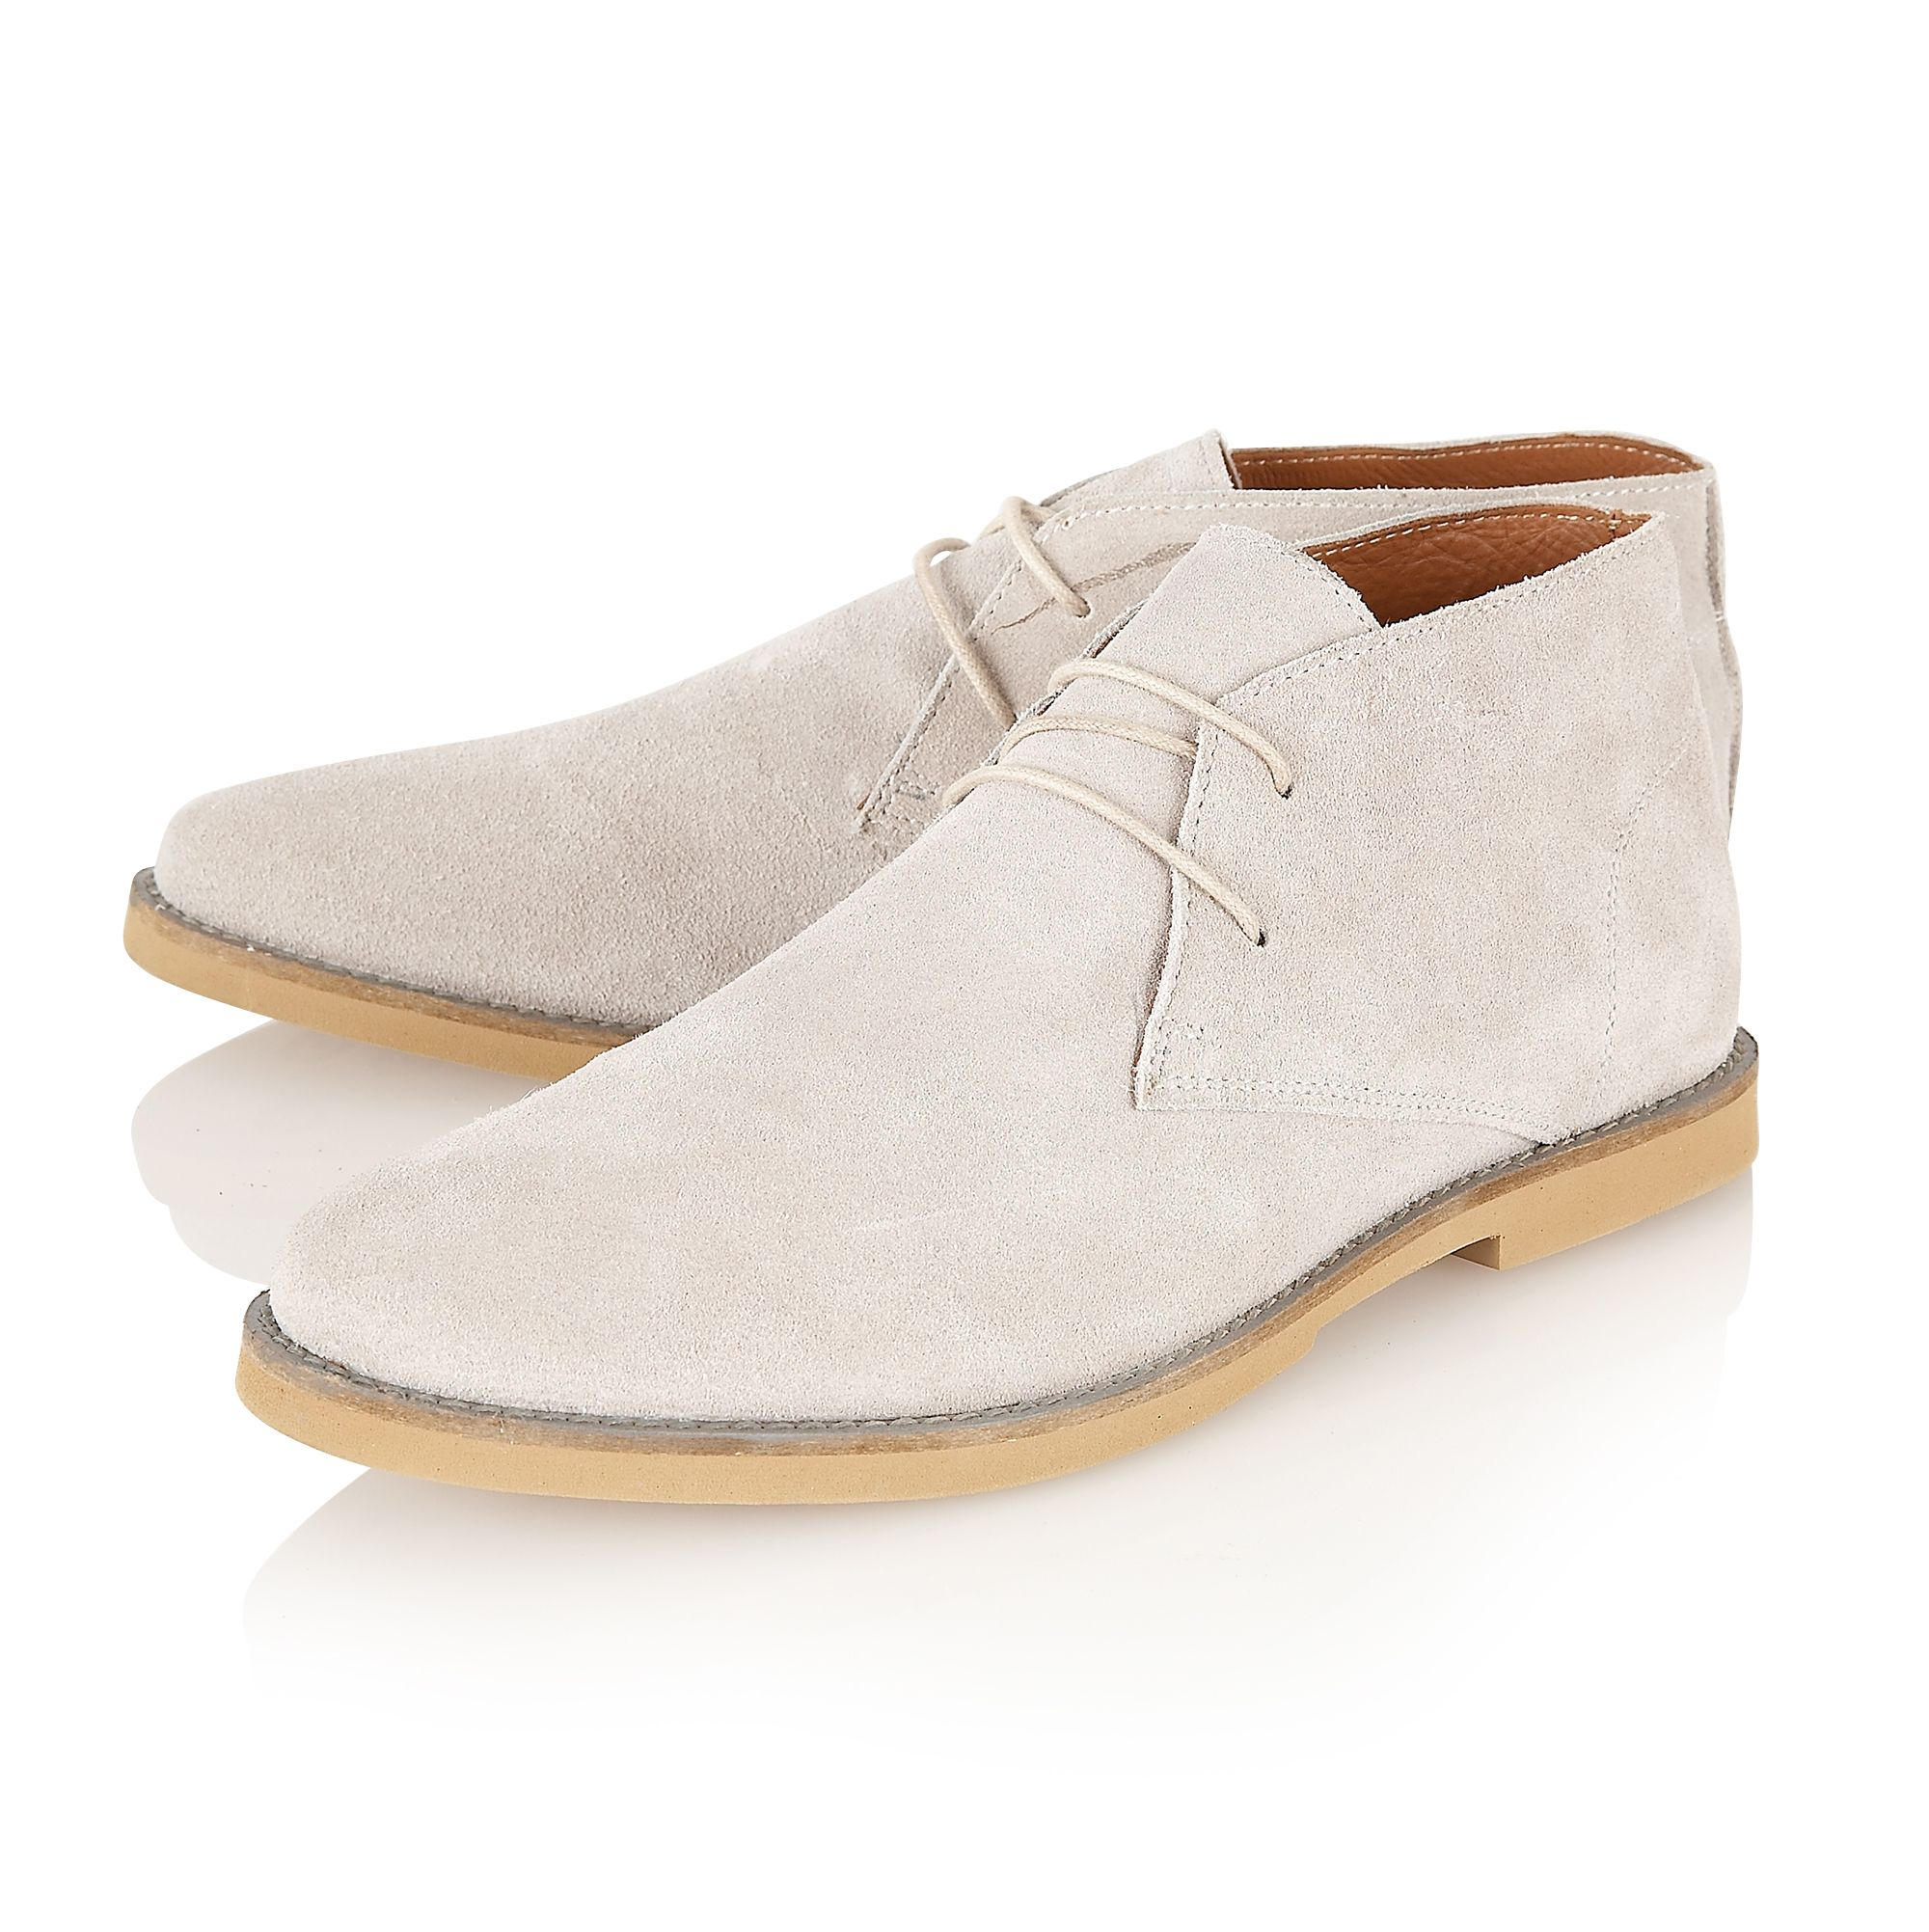 Totton round-toe boots